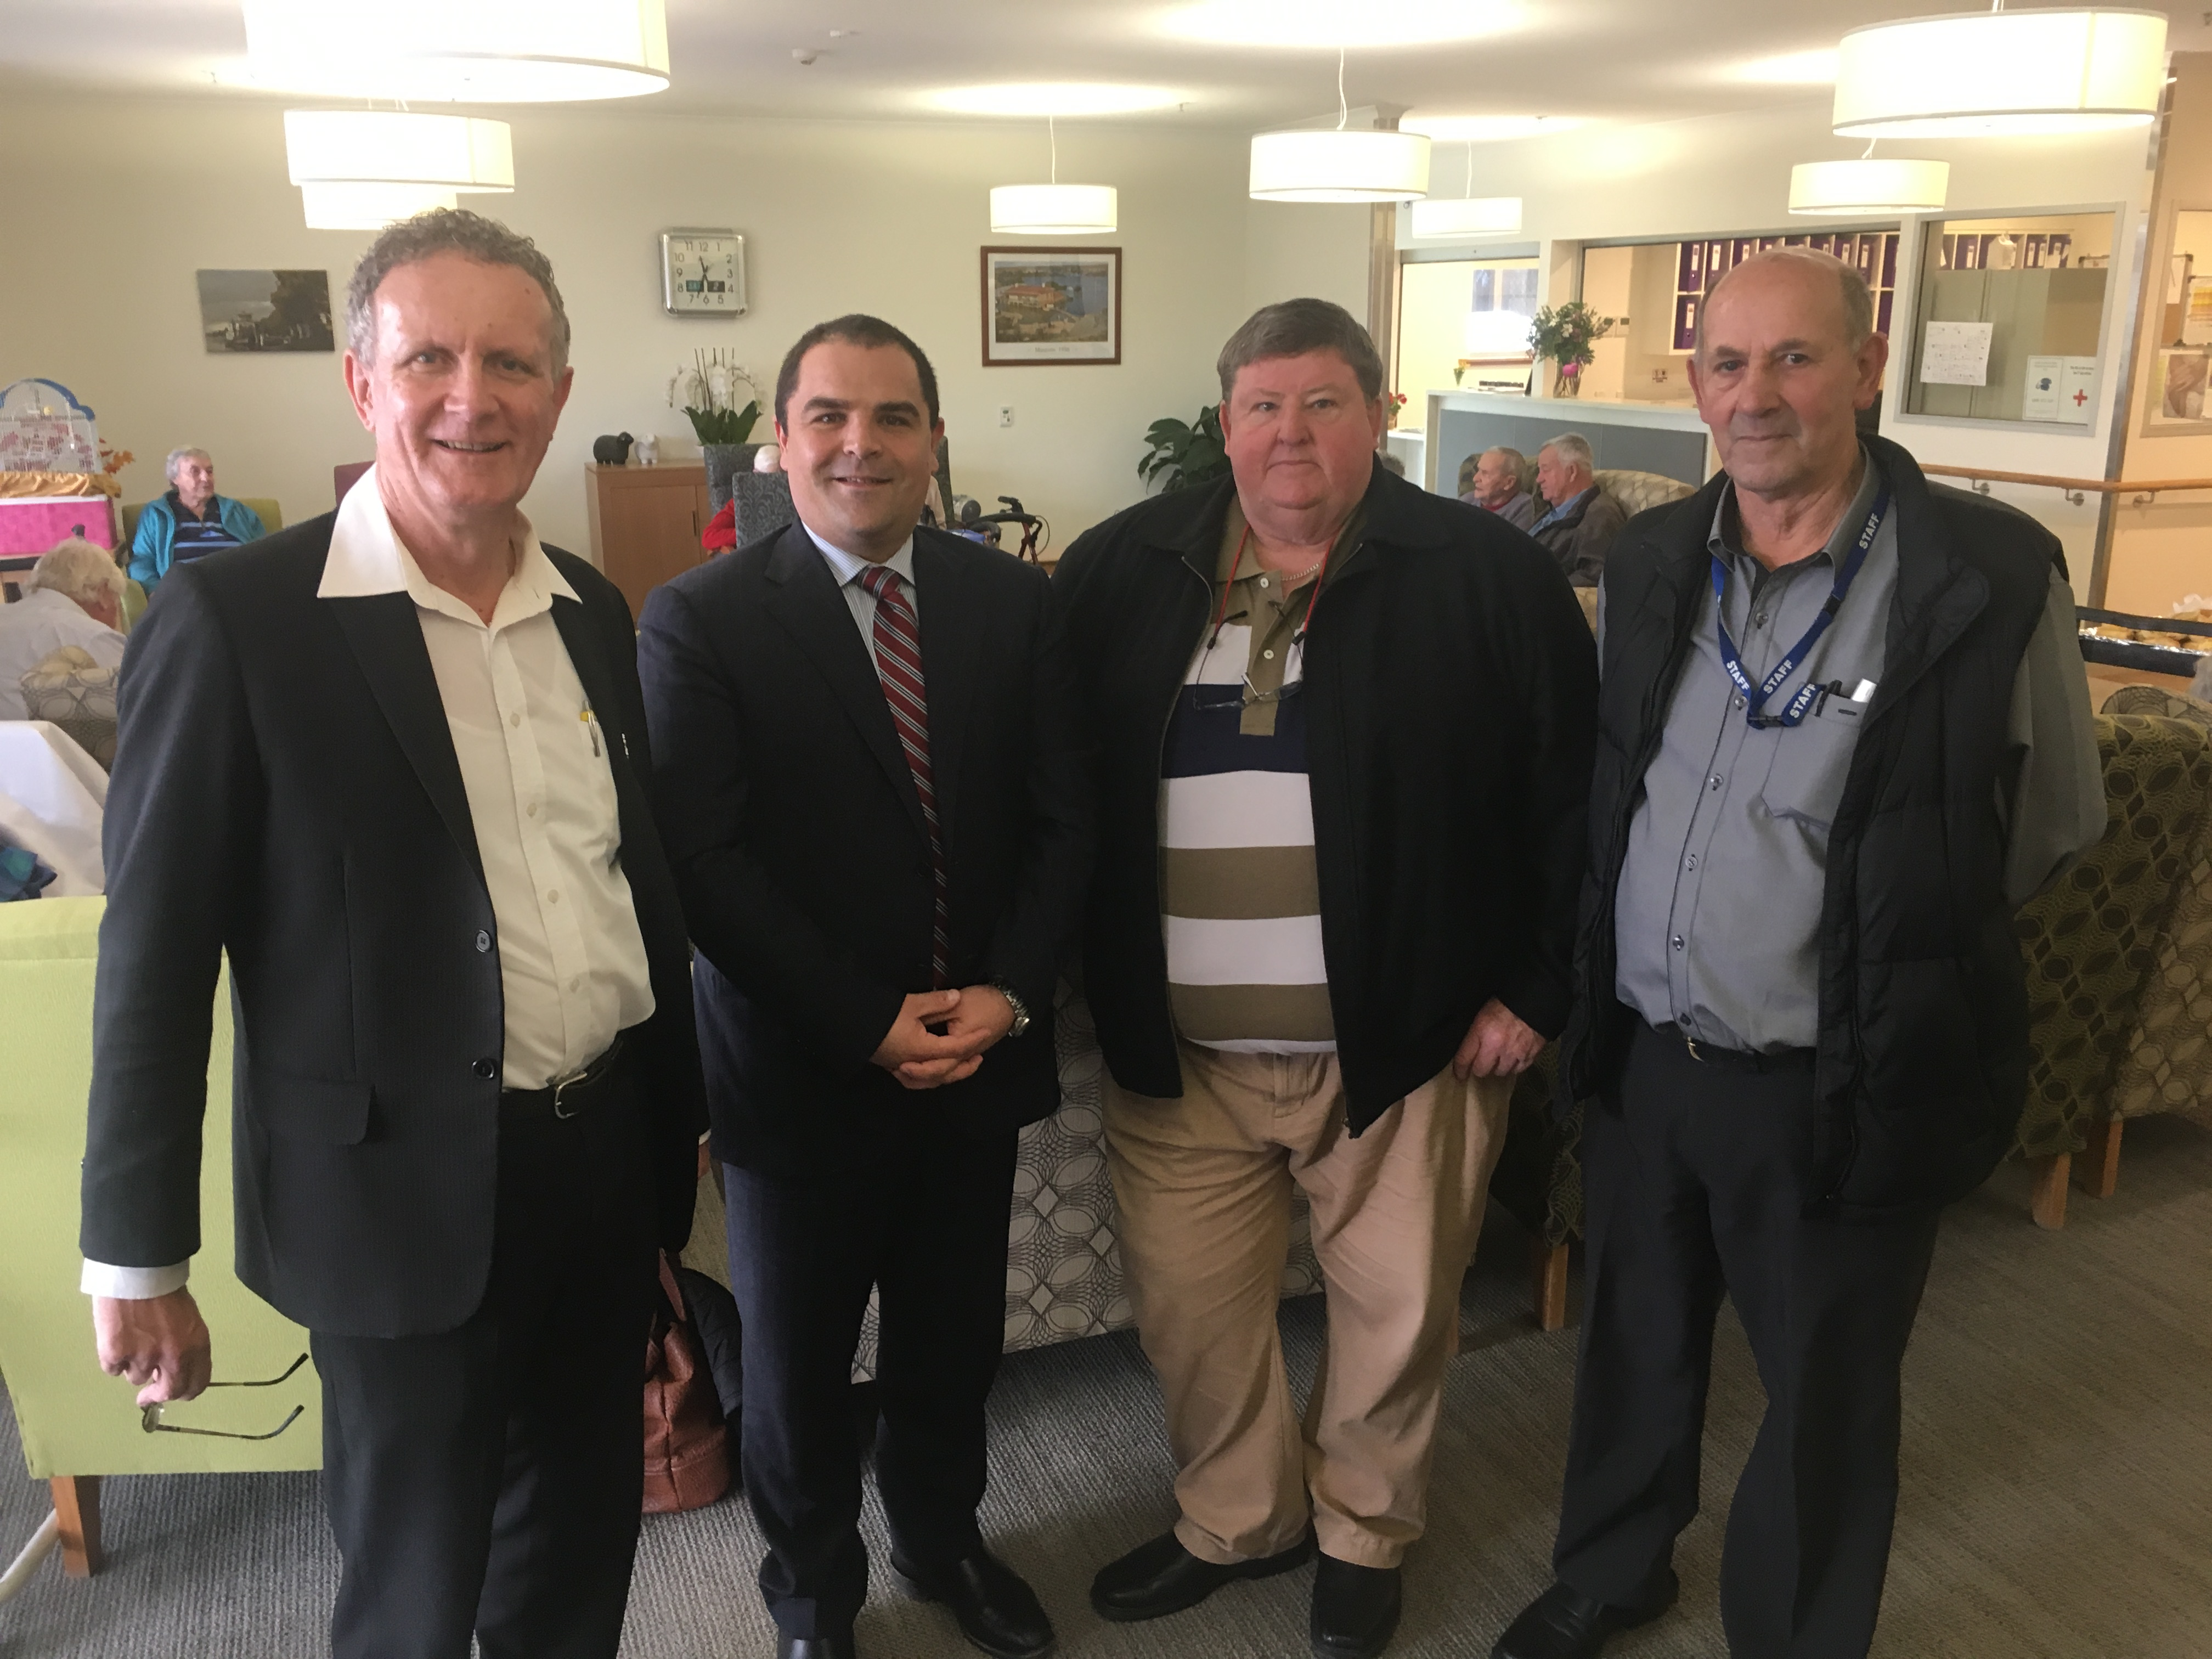 Mannum residents and region benefit from aged care expansion